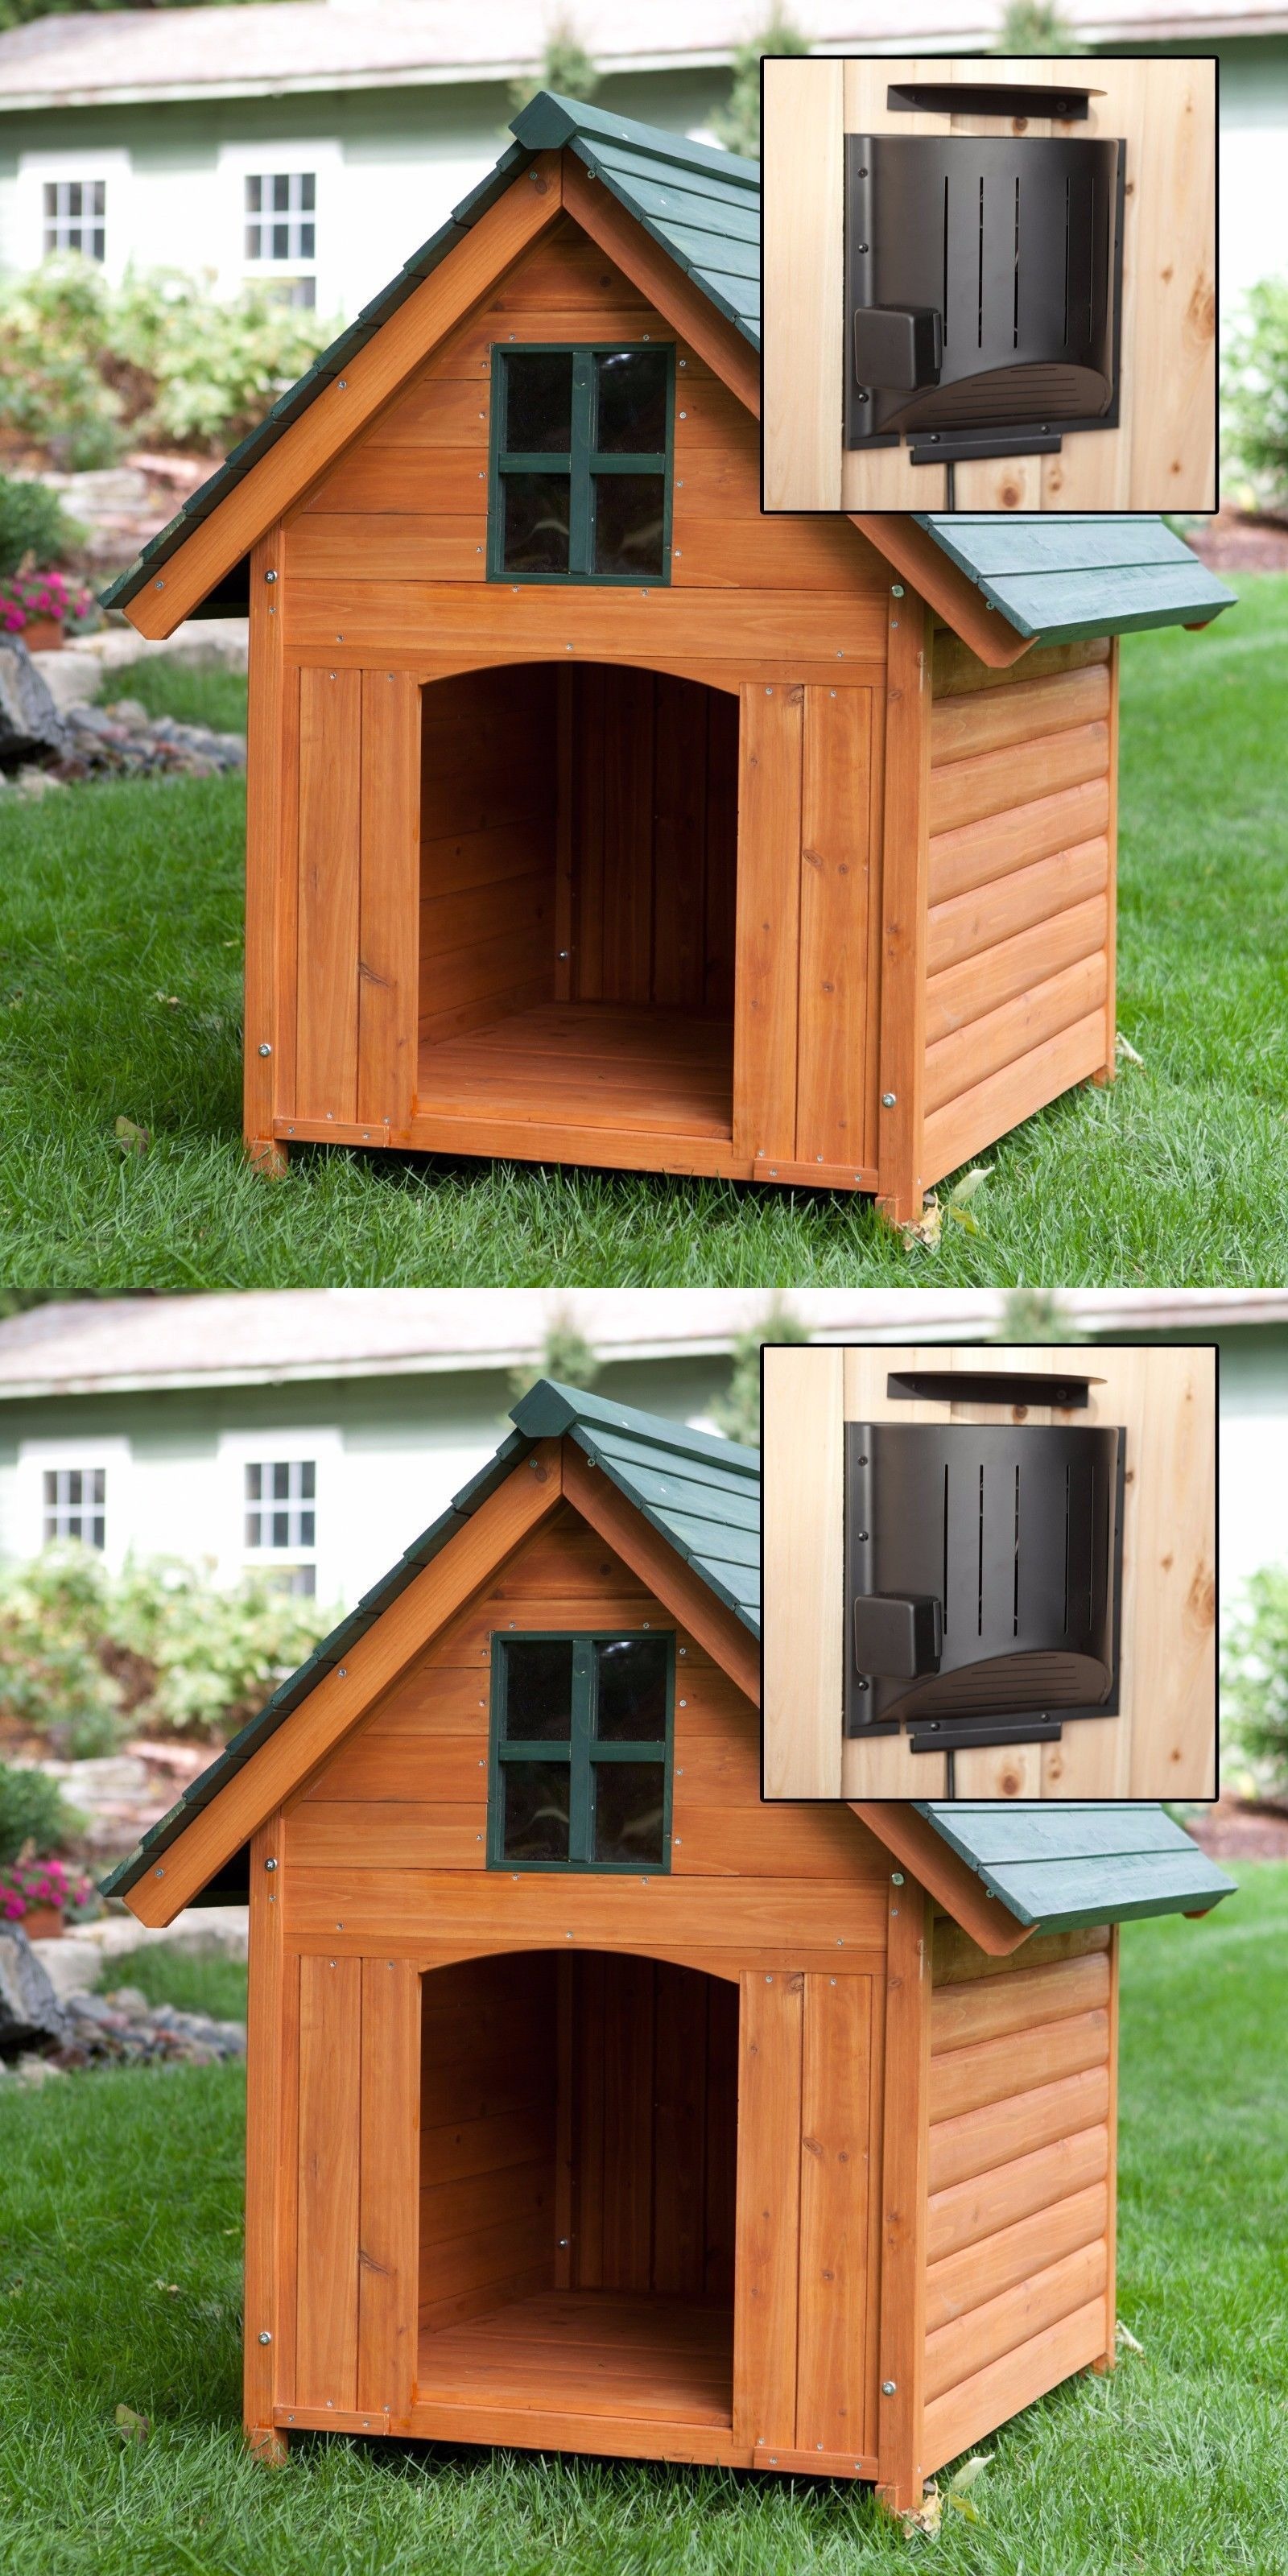 Dog Houses 108884 Outdoor Large Dog House Heated Wood Pet Kennel Deluxe Rustic Wooden Buy It Now On Extra Large Dog House Large Dog House Outdoor Dog House